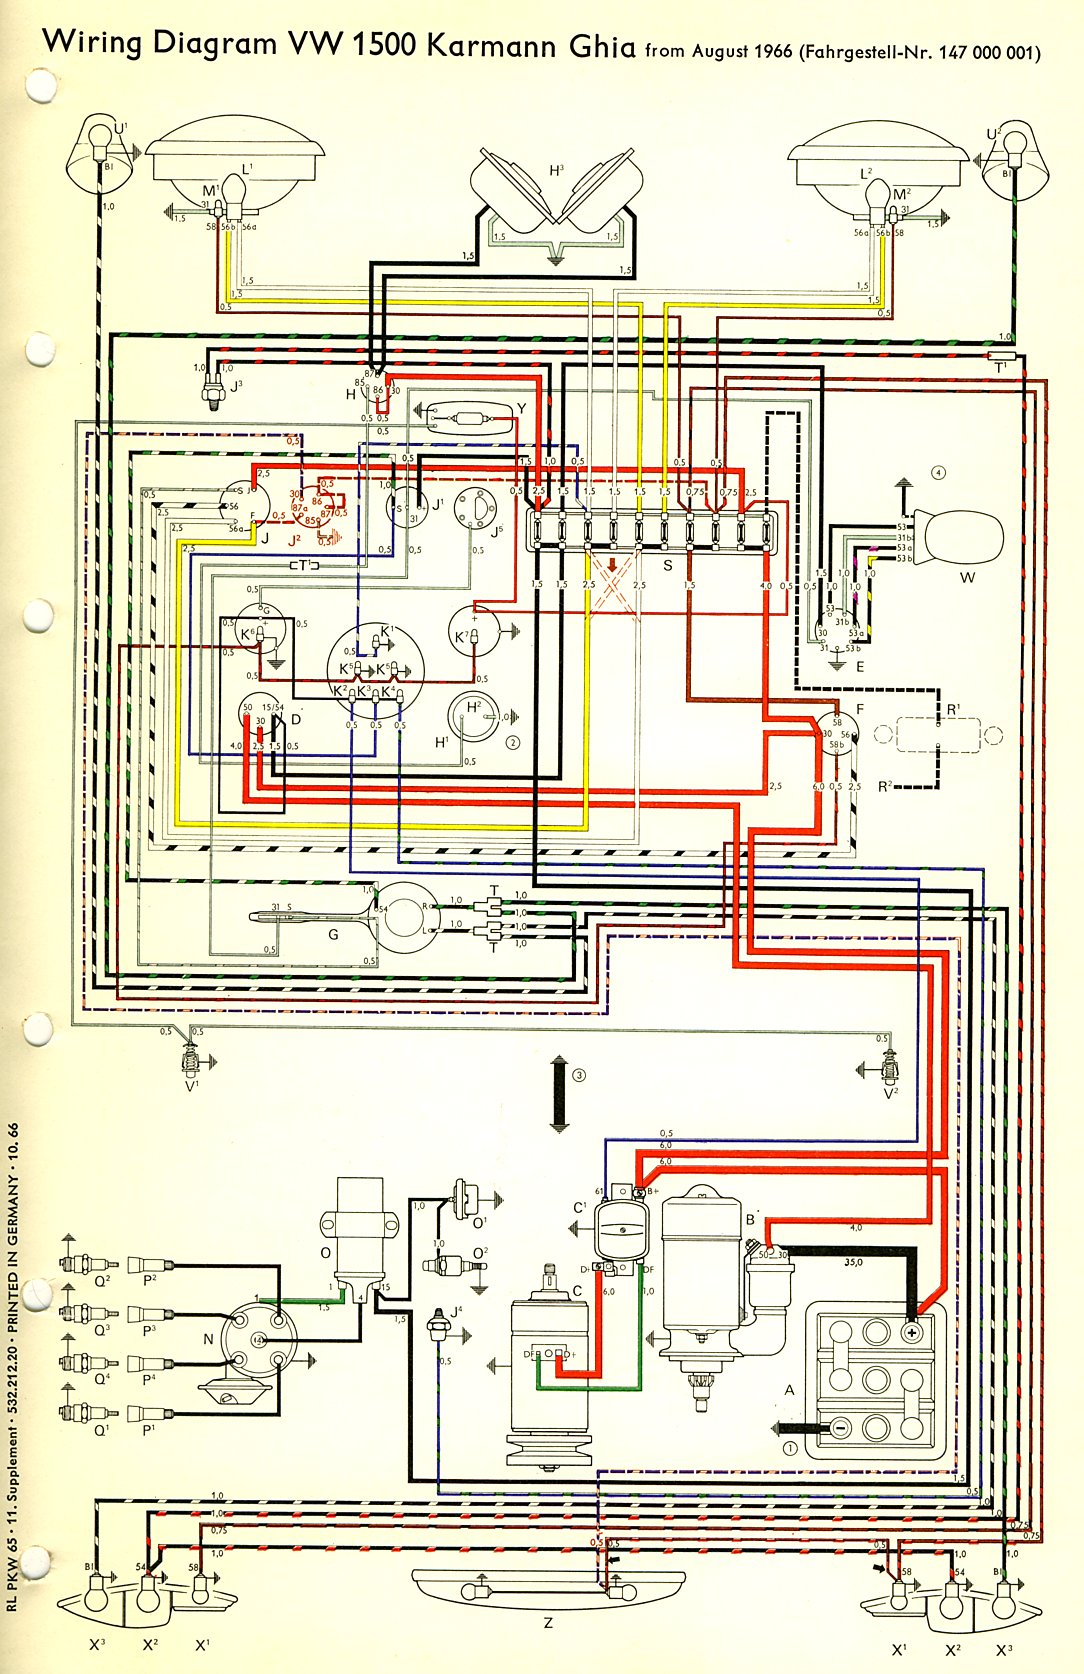 1970 vw 1600cc engine diagram 1970 vw wiring digram thesamba.com :: karmann ghia wiring diagrams